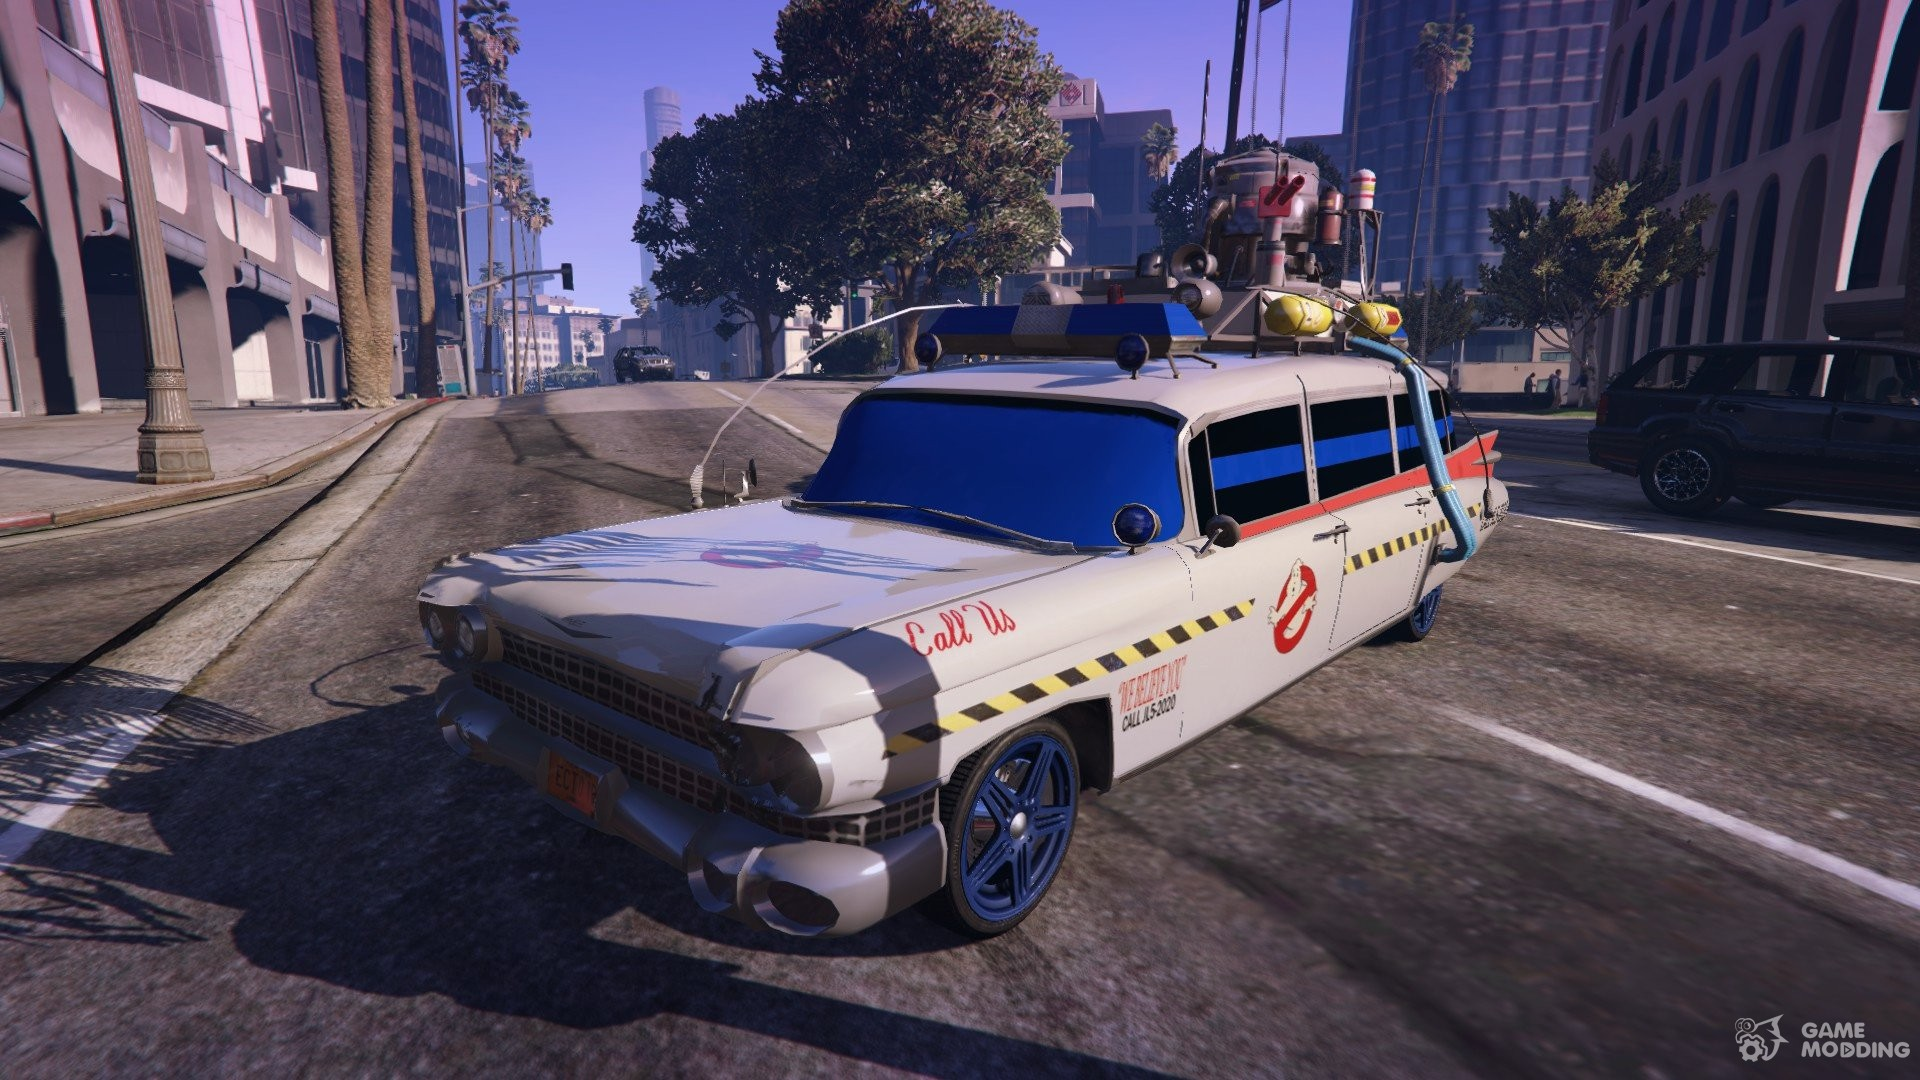 Cadillac Miller Meteor 1959 Quot Ghostbusters Ecto 1 Quot For Gta 5